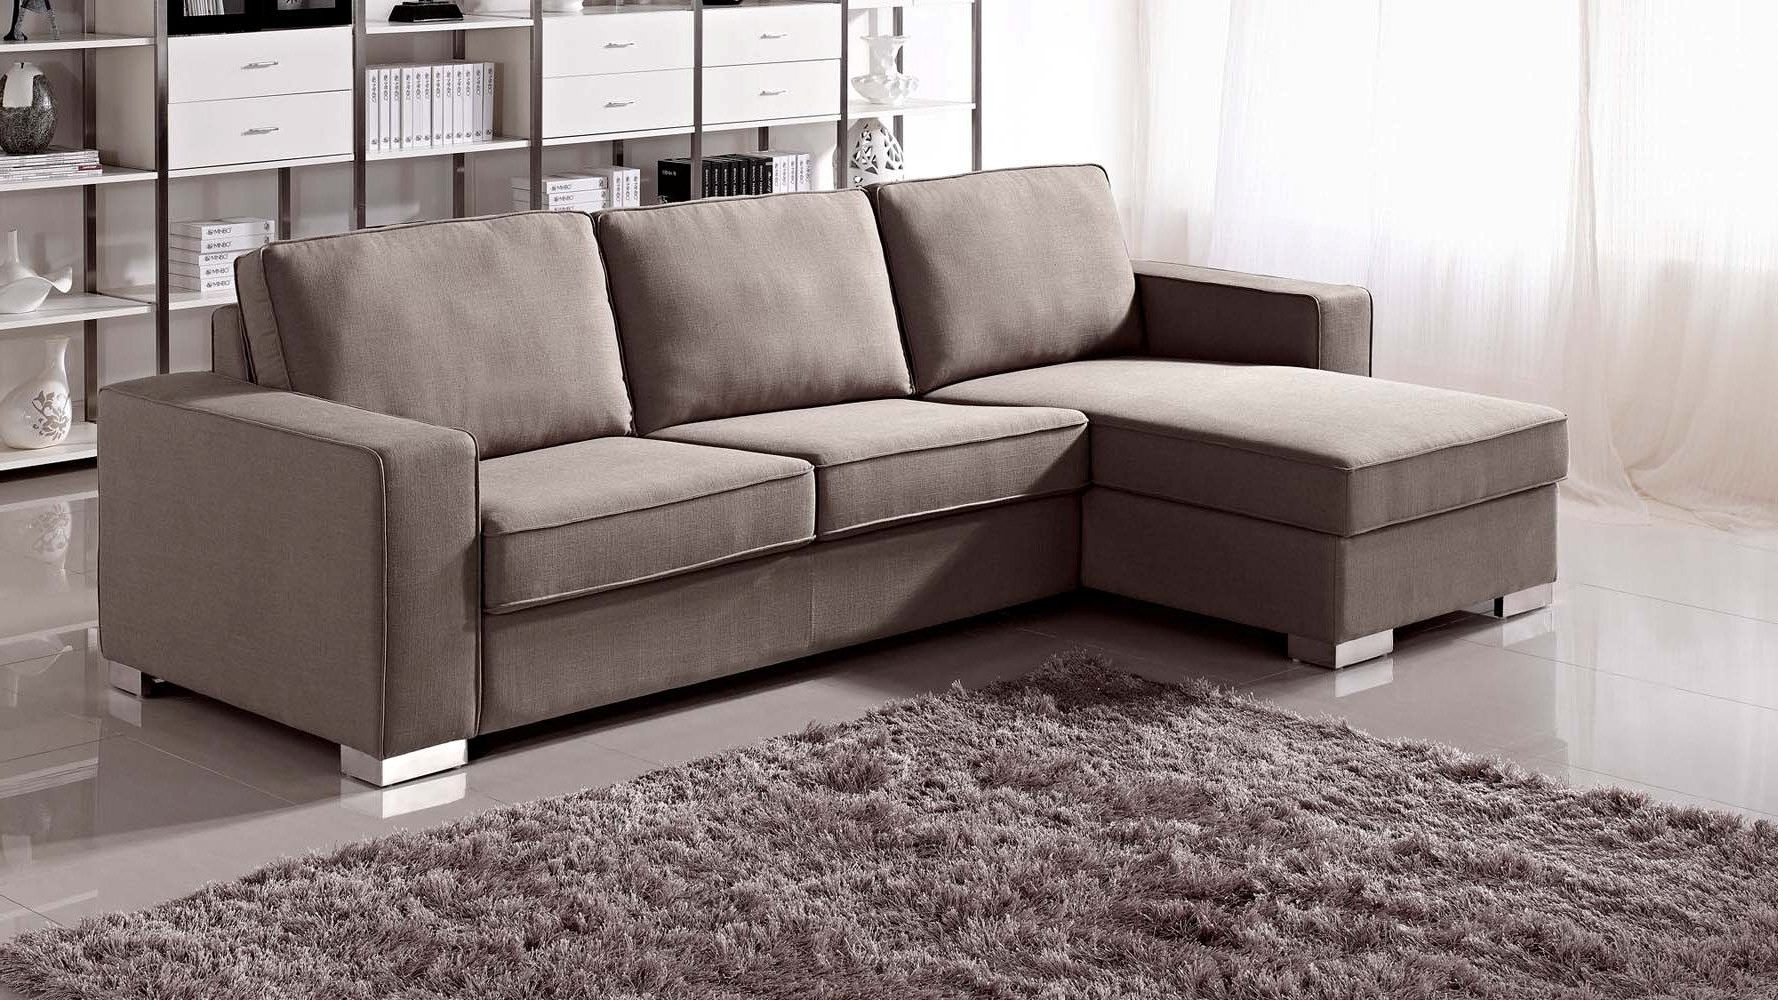 Widely Used Small Sectional Sofas With Chaise Throughout Sectional Sofa With Sleeper And Chaise (View 10 of 15)